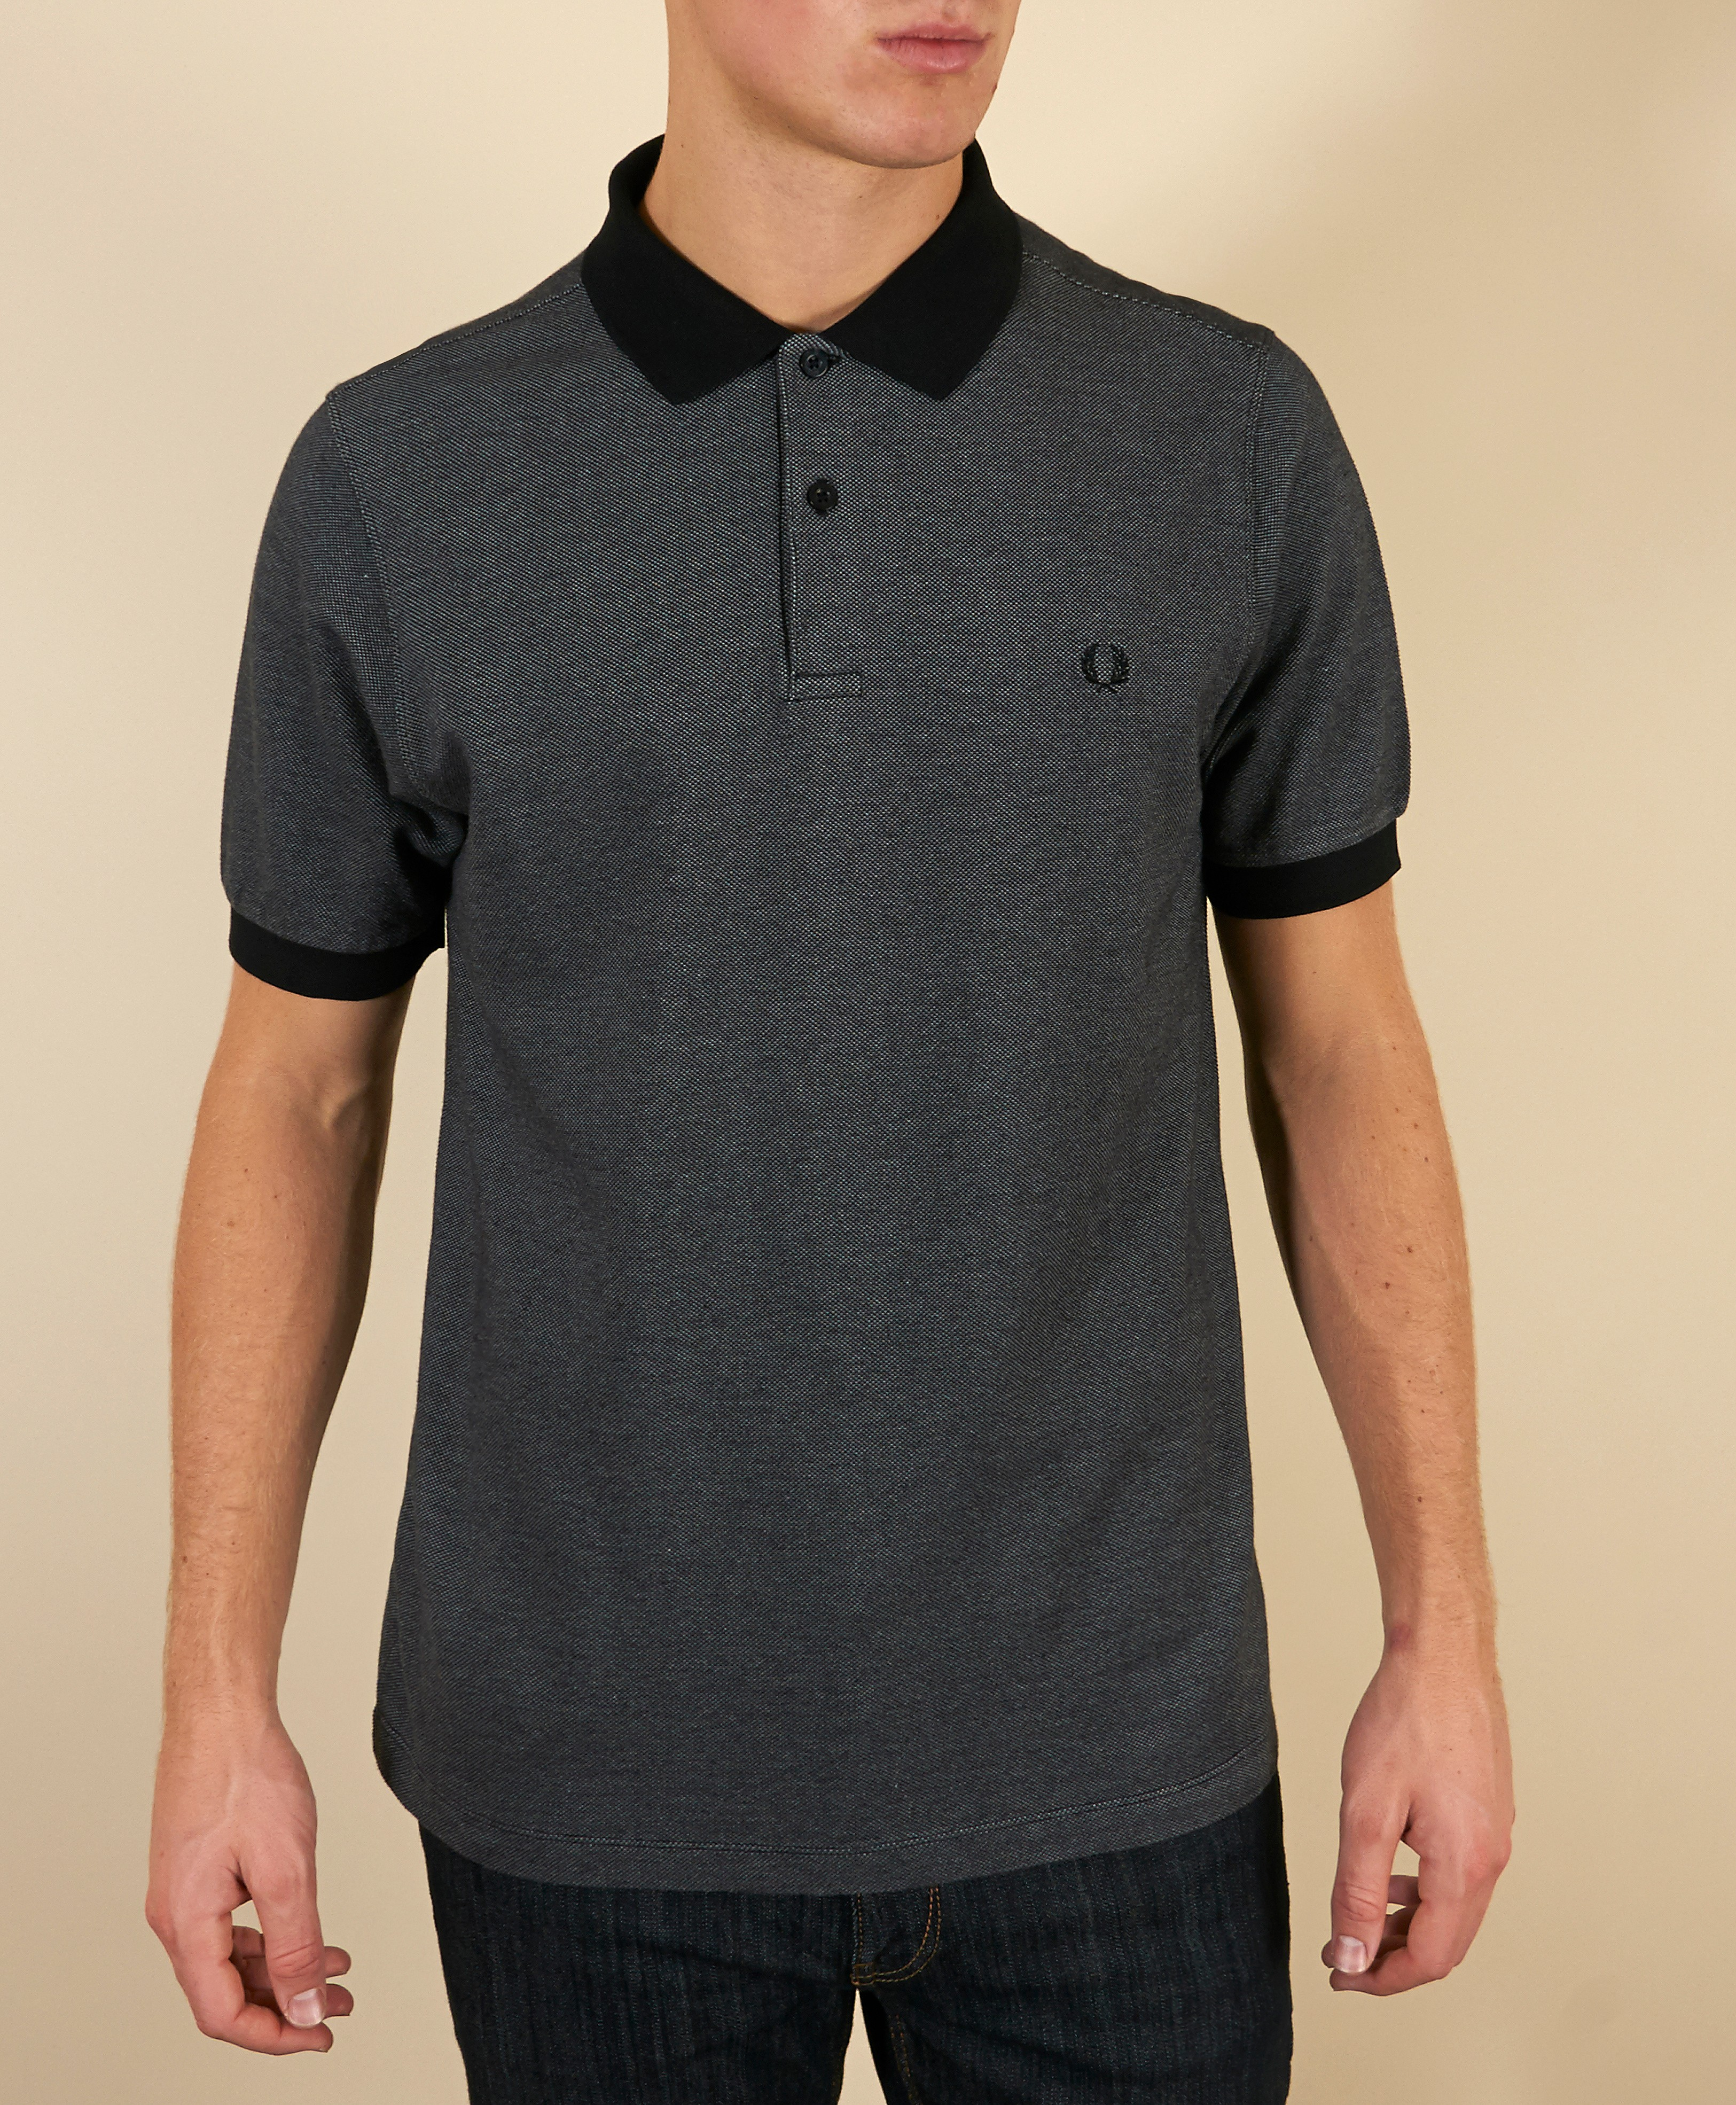 Fred Perry Tonic Polo Shirt  Exclusive  CharcoalBlack CharcoalBlack